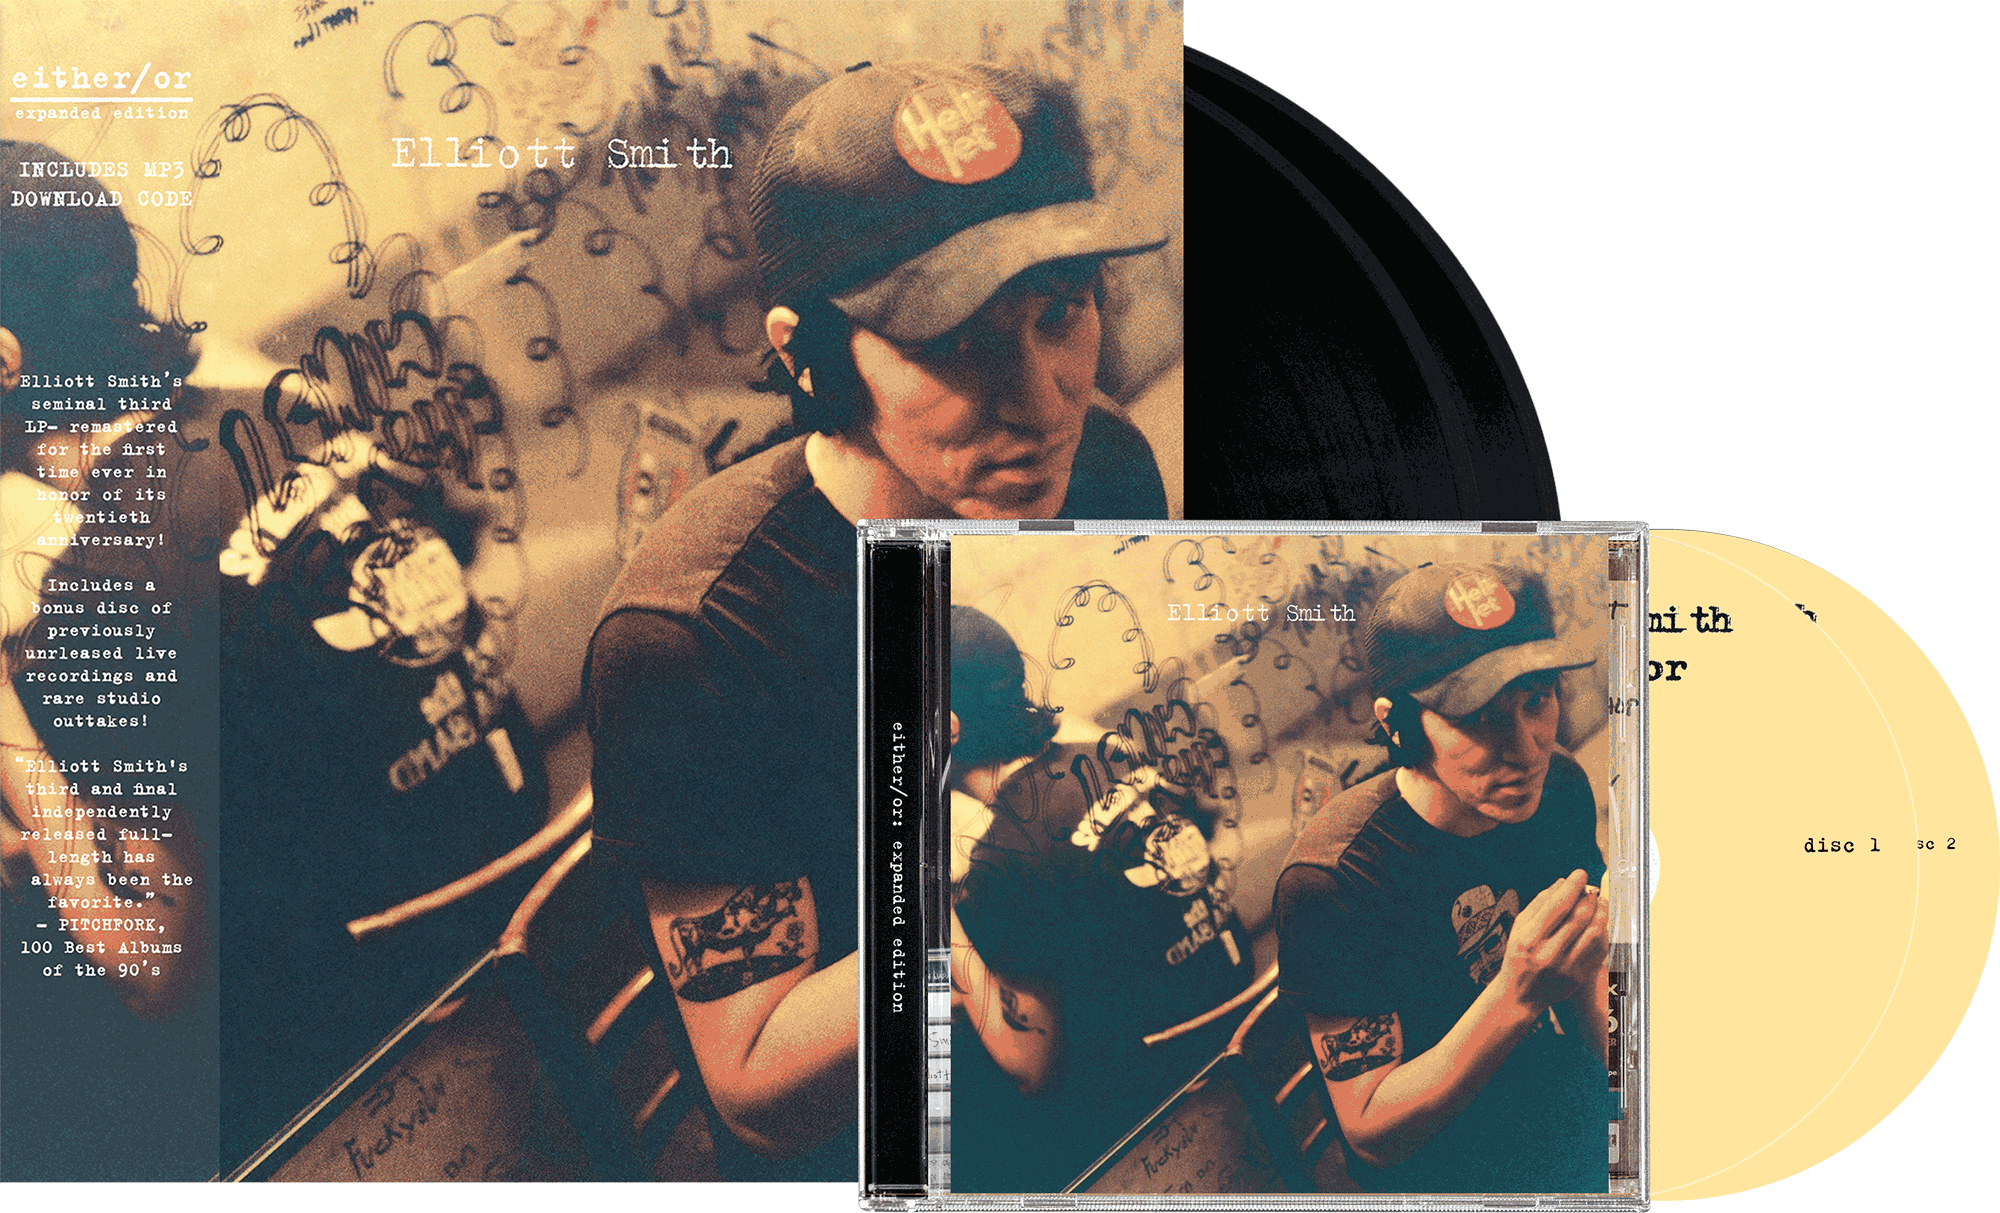 Elliott Smith either/or expanded reissue